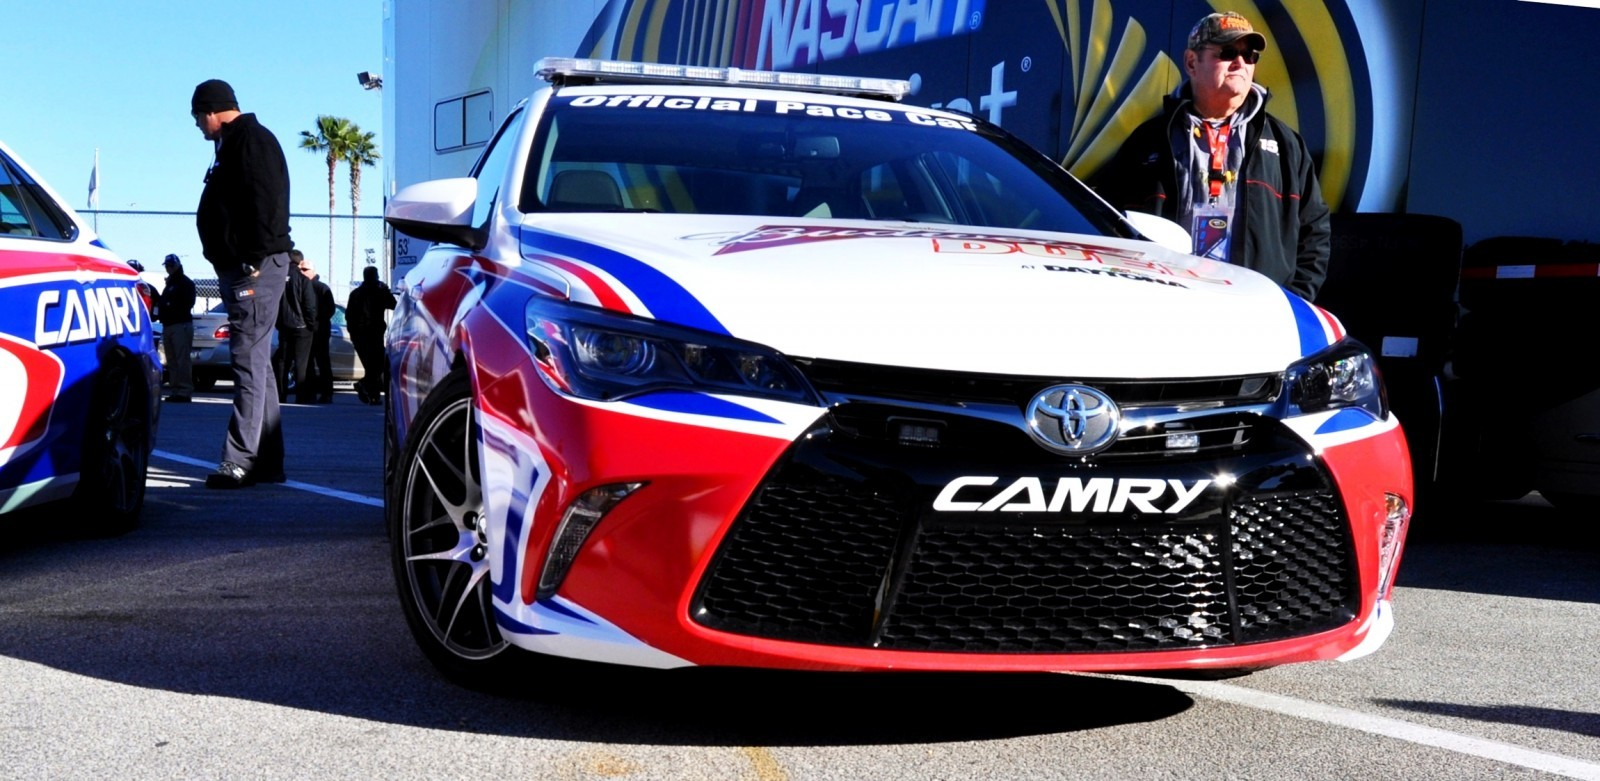 2015 Toyota Camry - DAYTONA 500 Official Pace Car 30